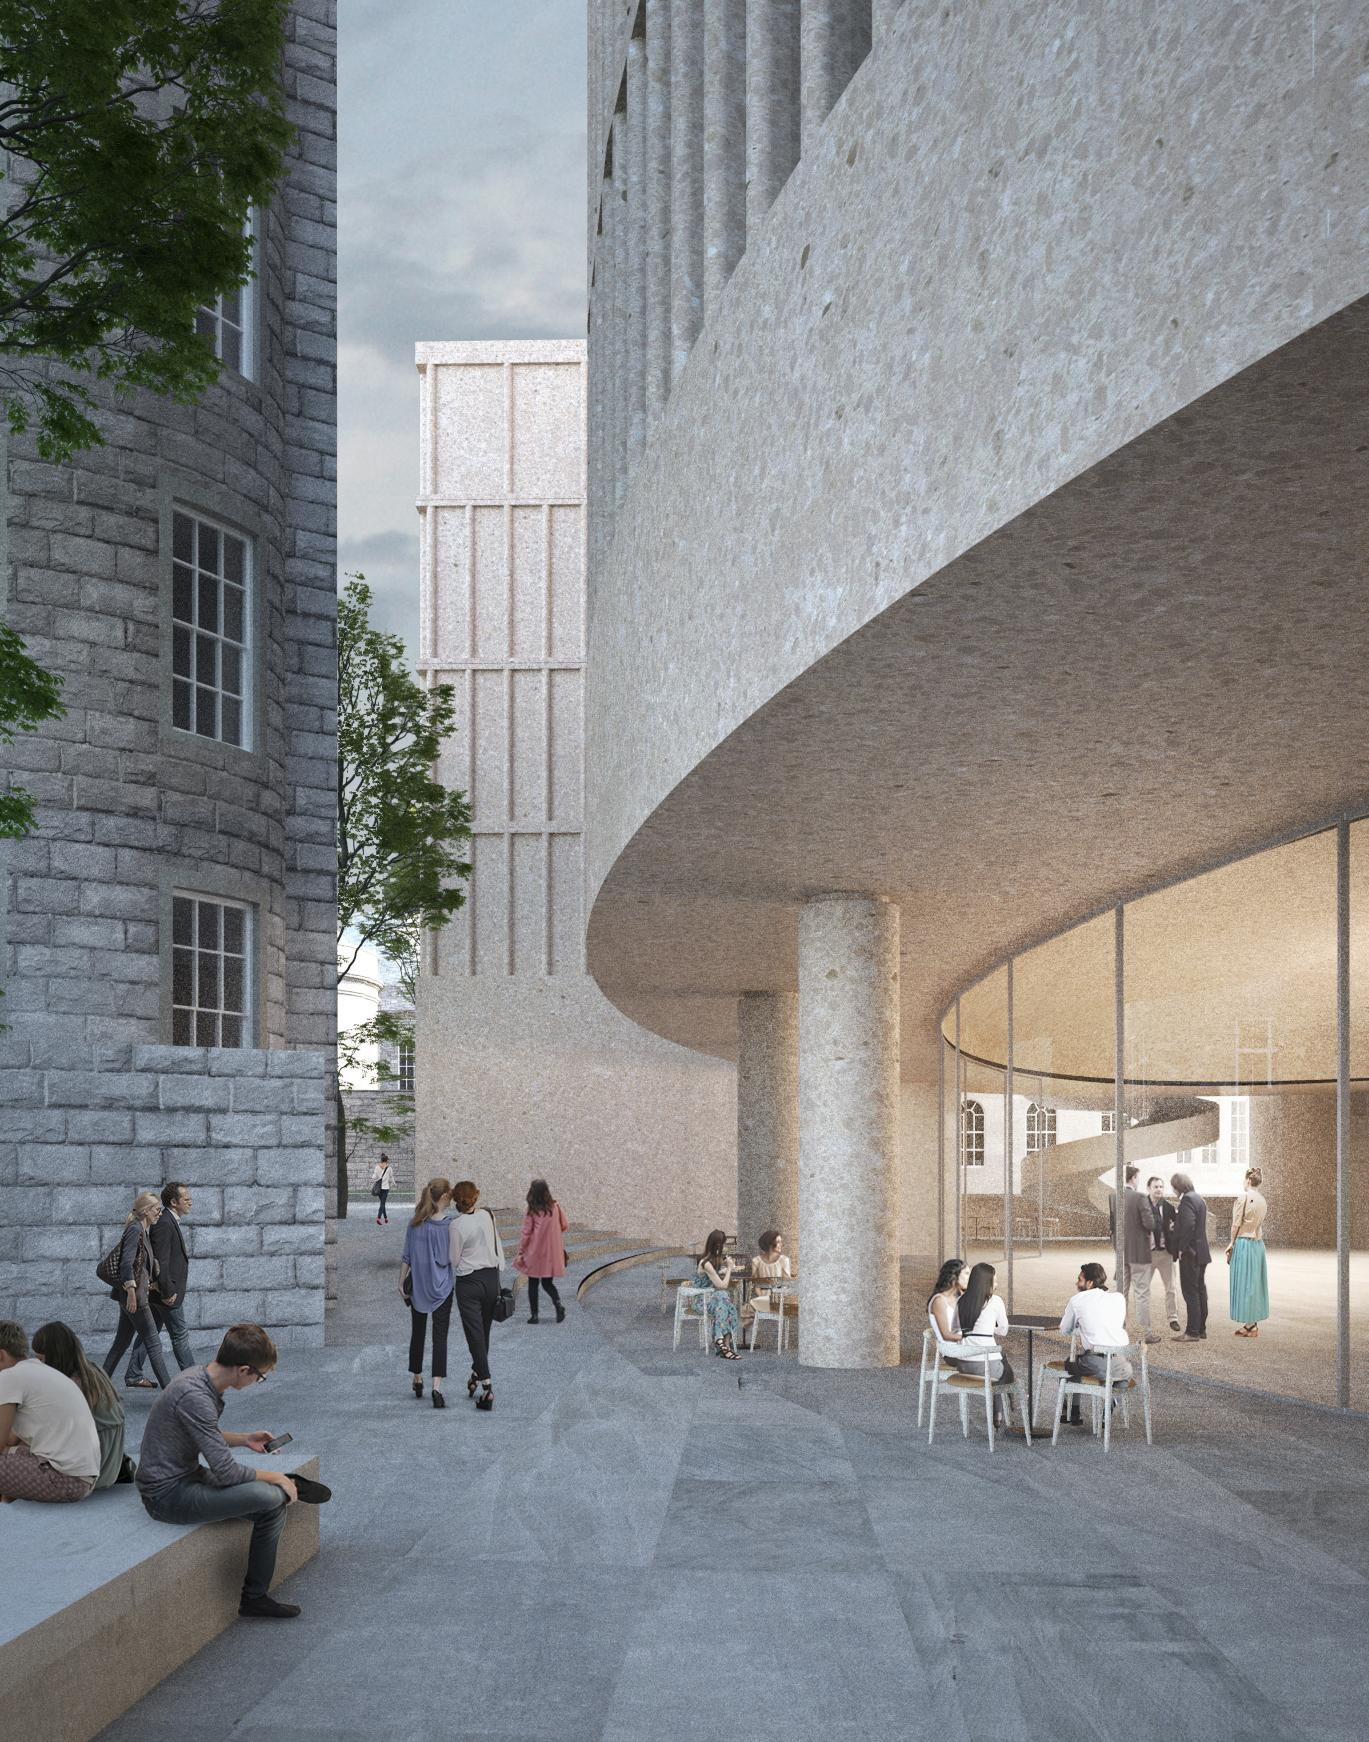 Adjaye Associates, Richard Murphy, Allies & Morrison, Barozzi Veiga and KPMB were all in contention for the commission, but the vision outlined by Chipperfield's practice was enough to sway the developers / The IMPACT Centre